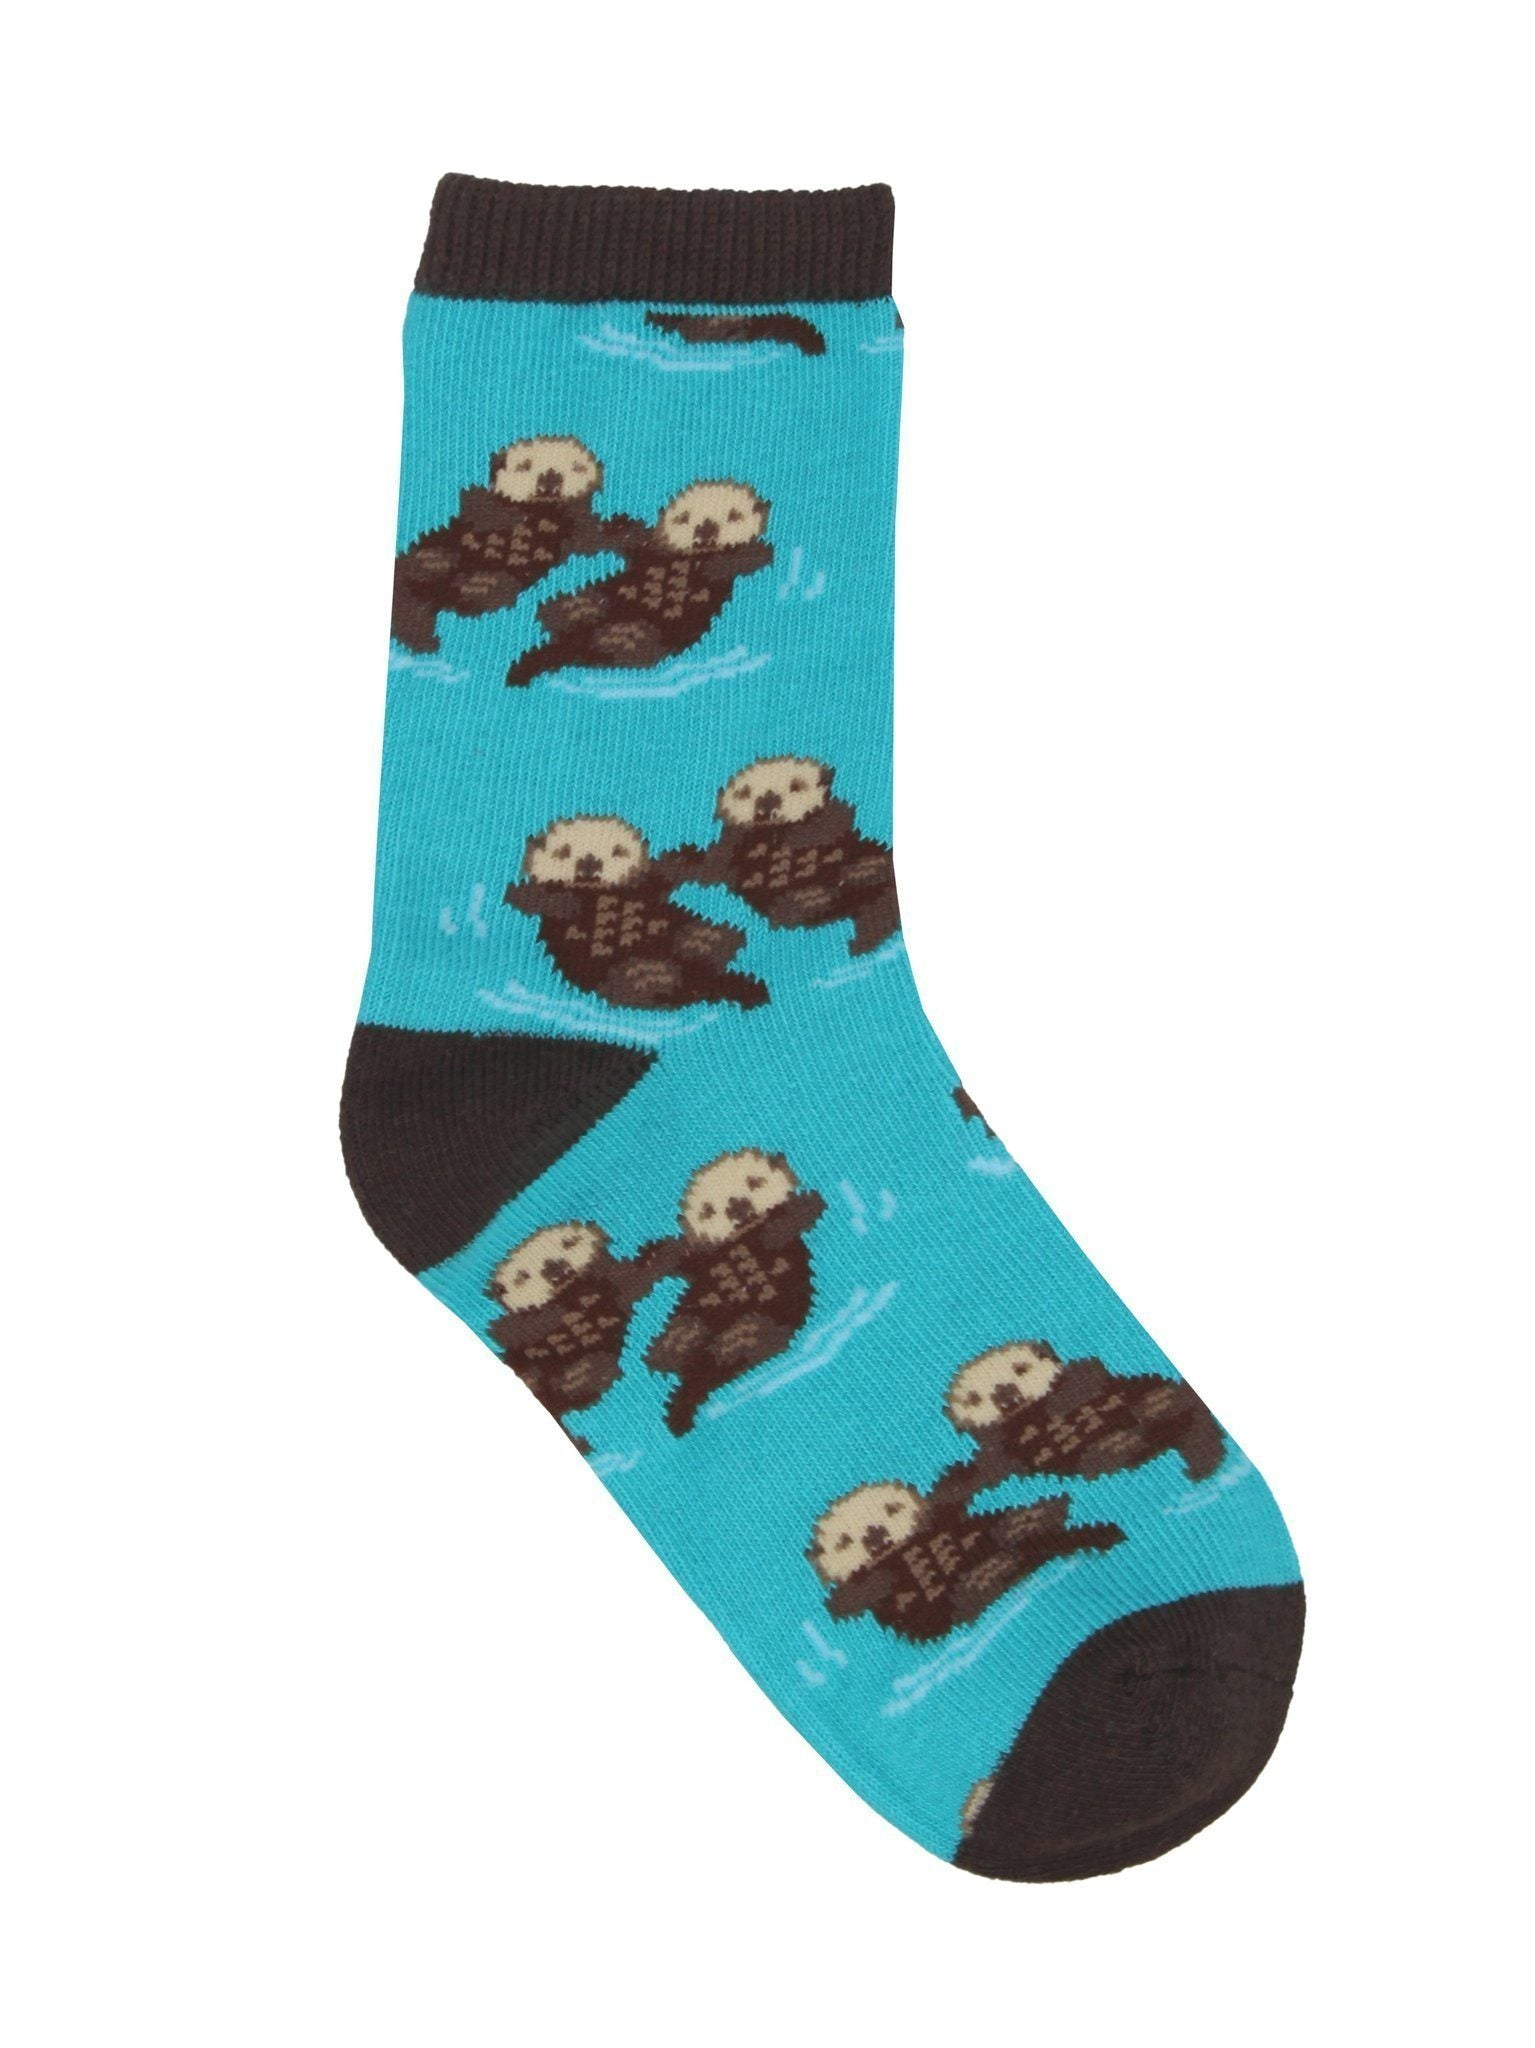 Socksmith - Significant Otter Crew Socks | Kids' - Knock Your Socks Off